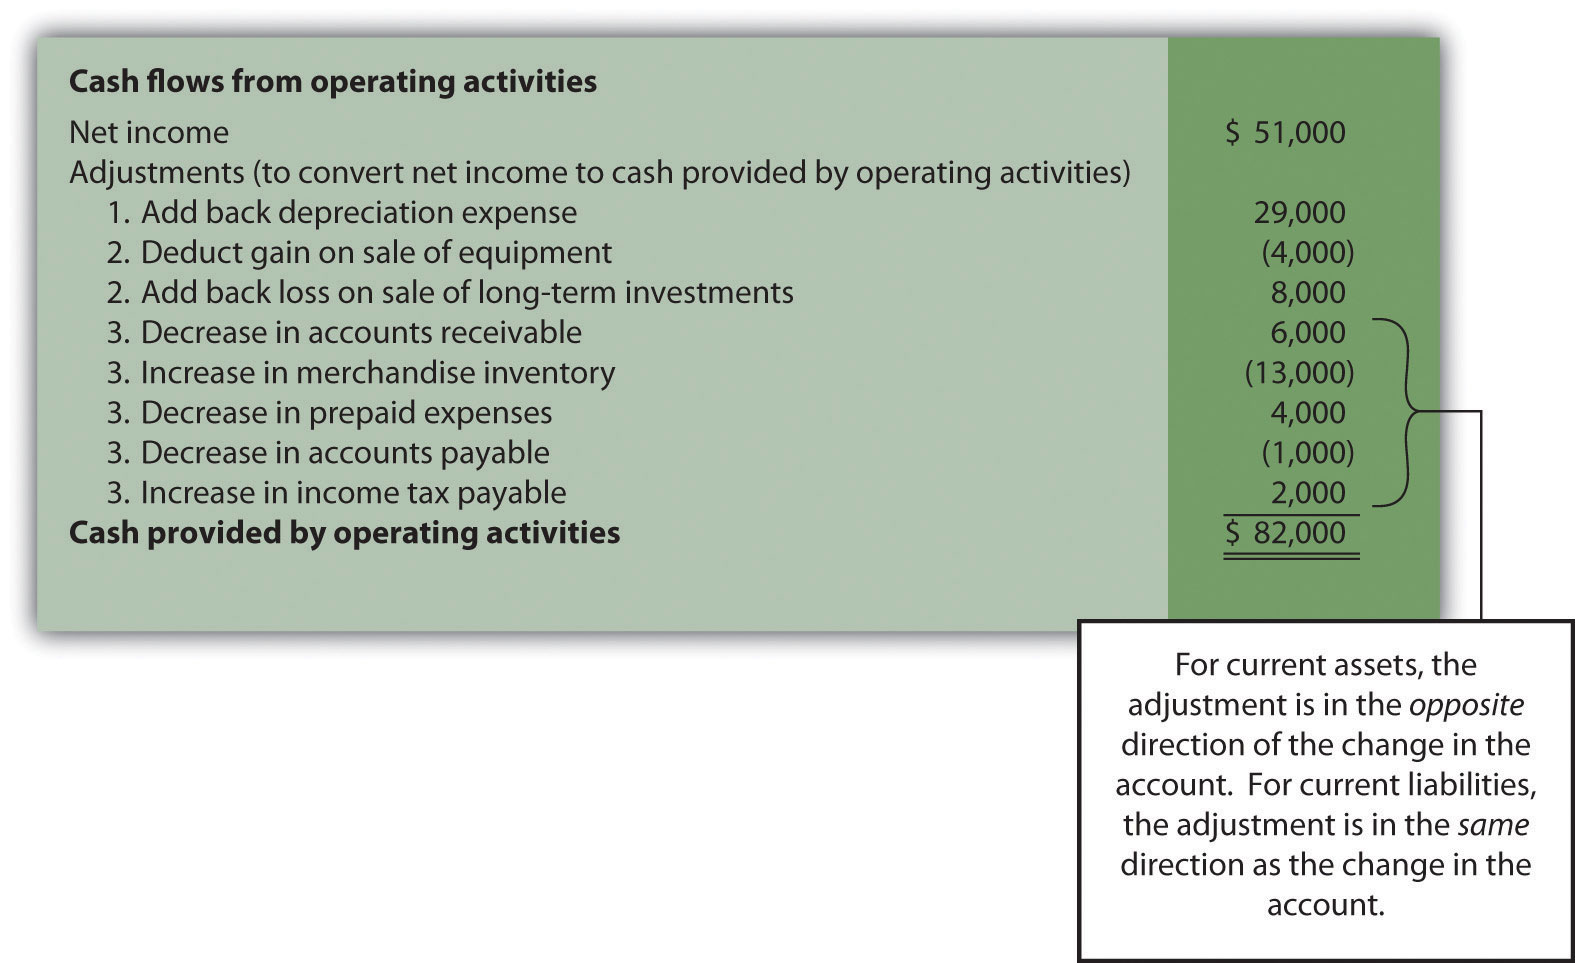 Free Cash Flow As Part Of Voluntary Reporting. Literature Review